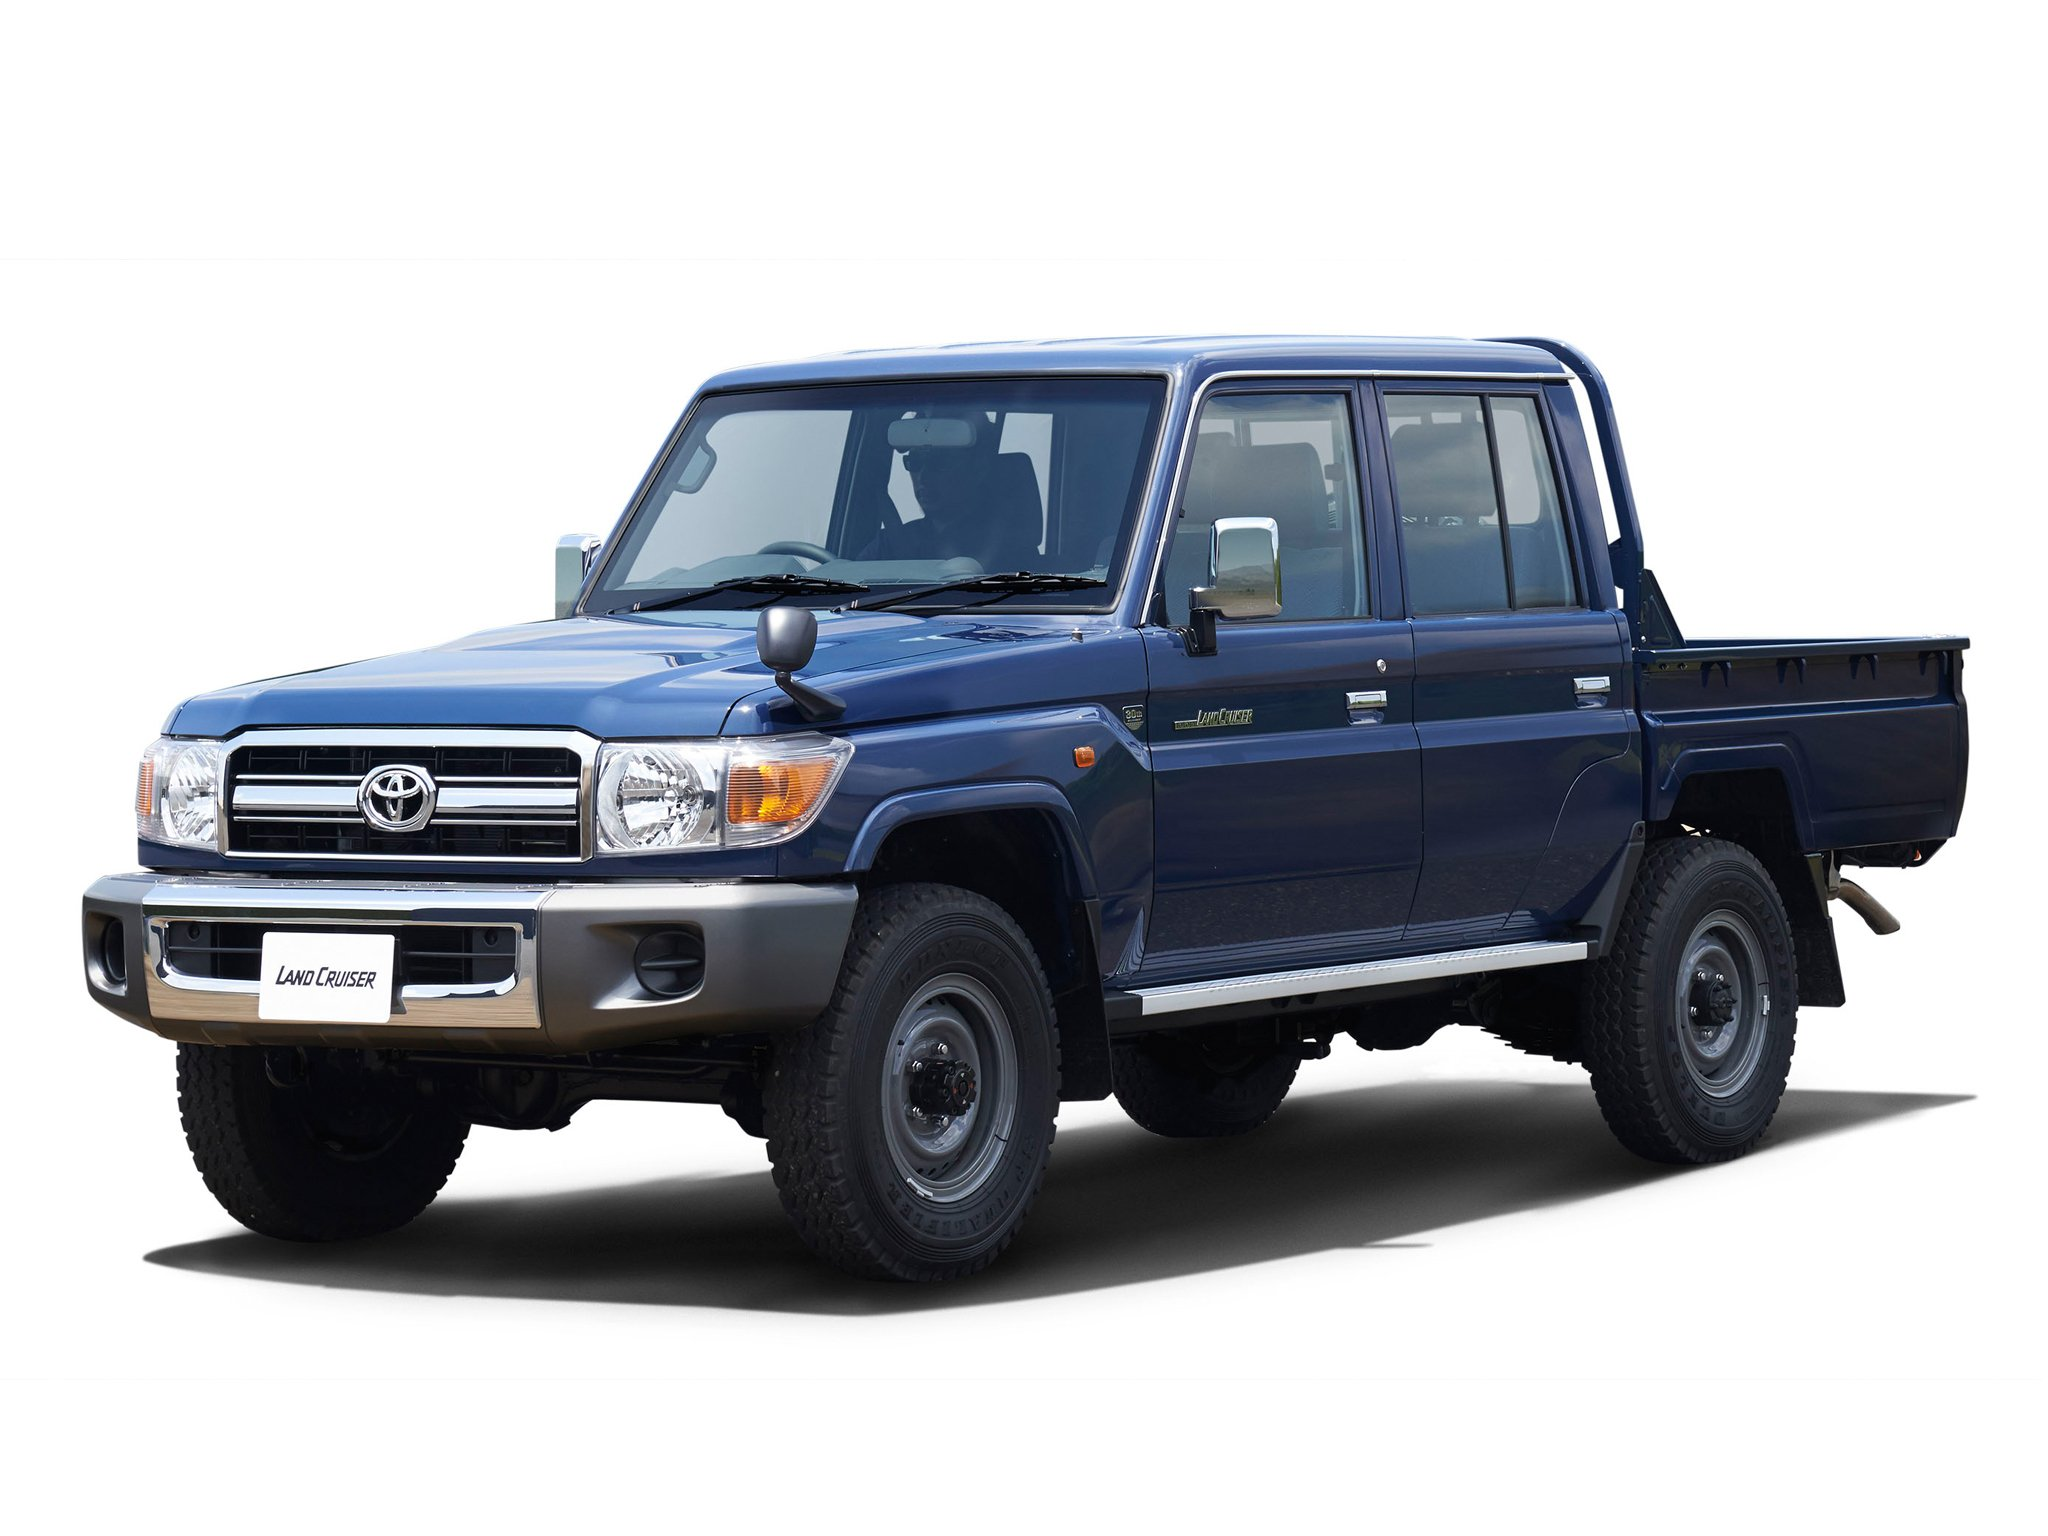 4x4 toyota land cruiser pick up. Black Bedroom Furniture Sets. Home Design Ideas